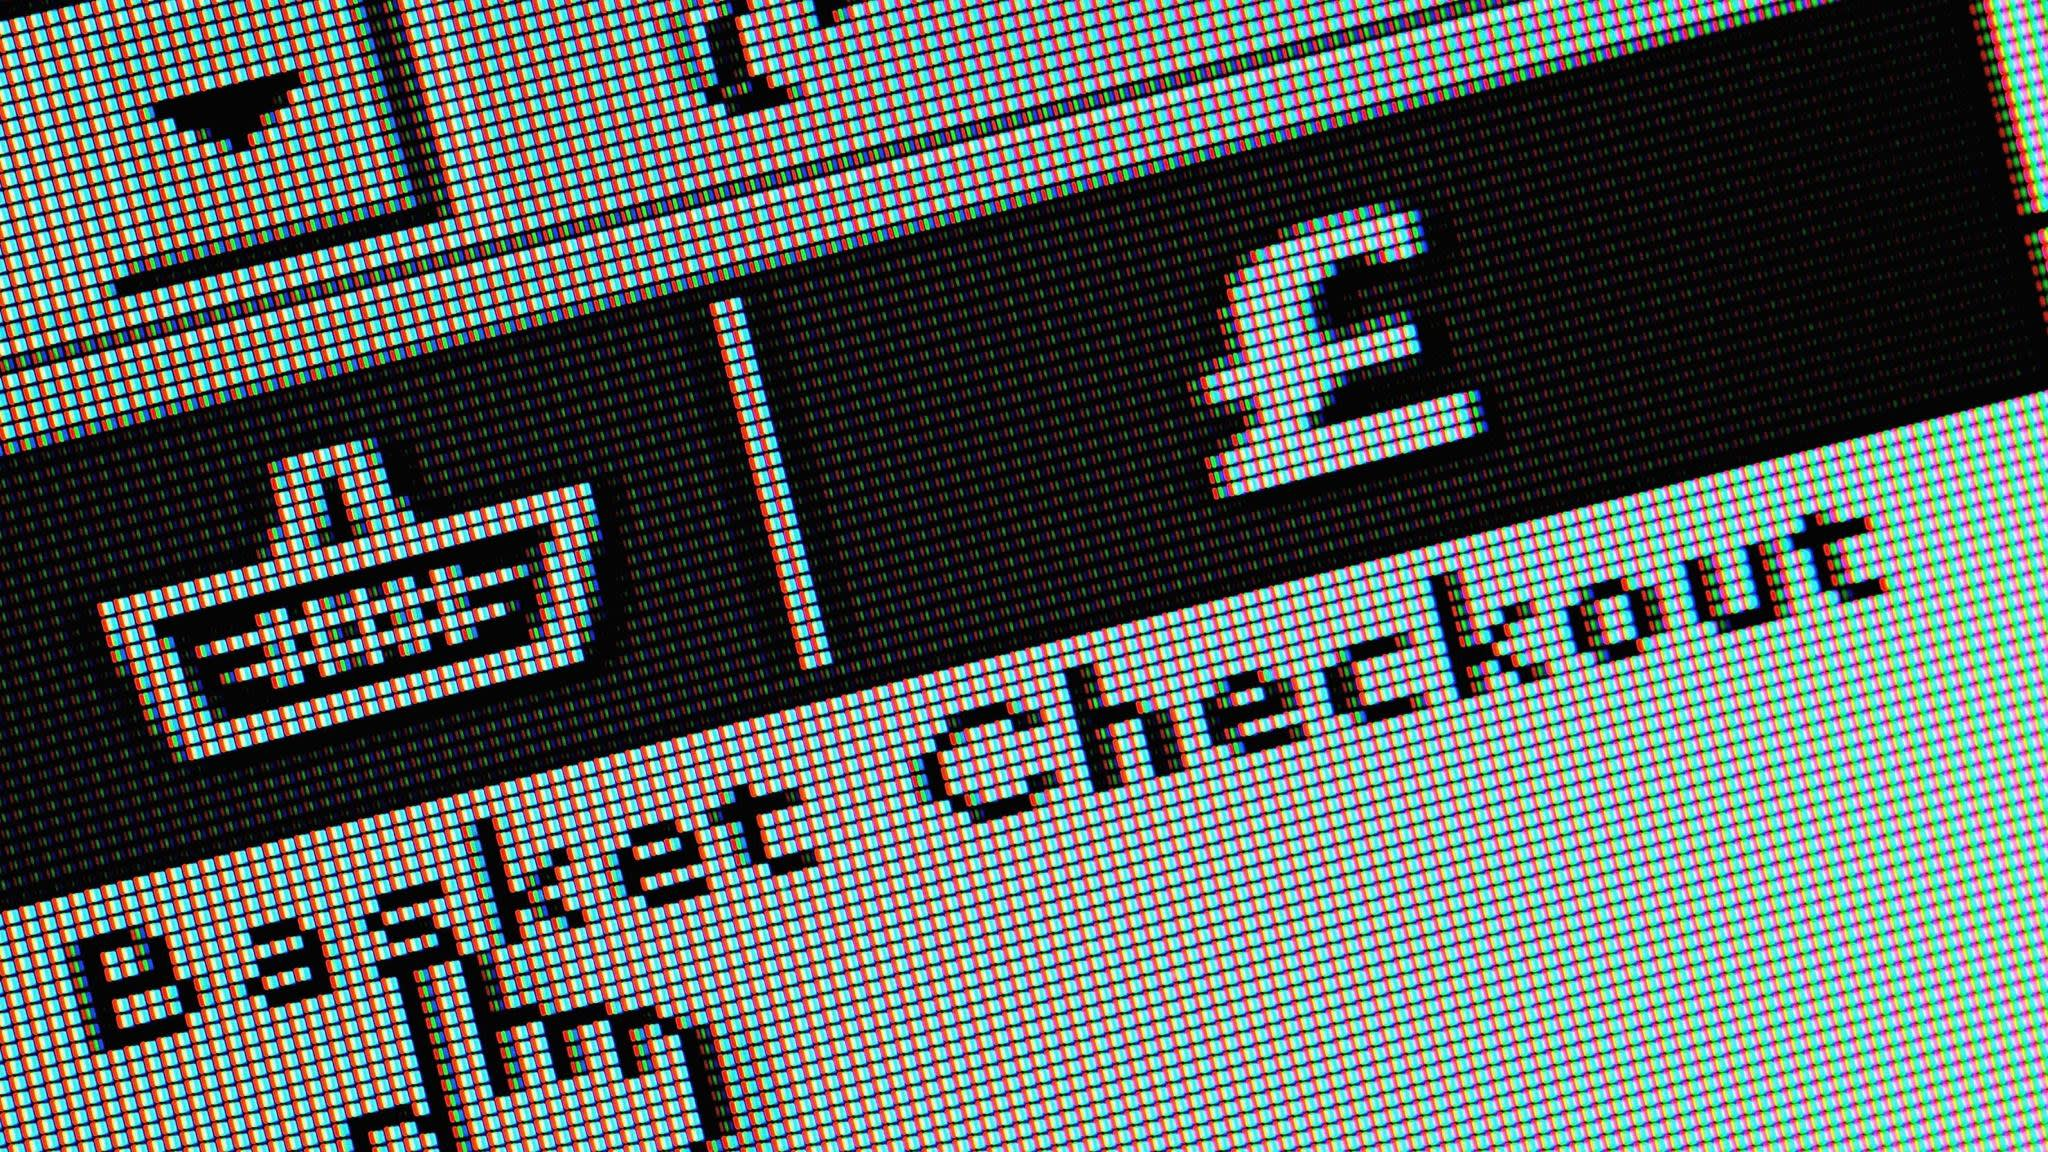 UK turns into nation of online shoppers | Financial Times